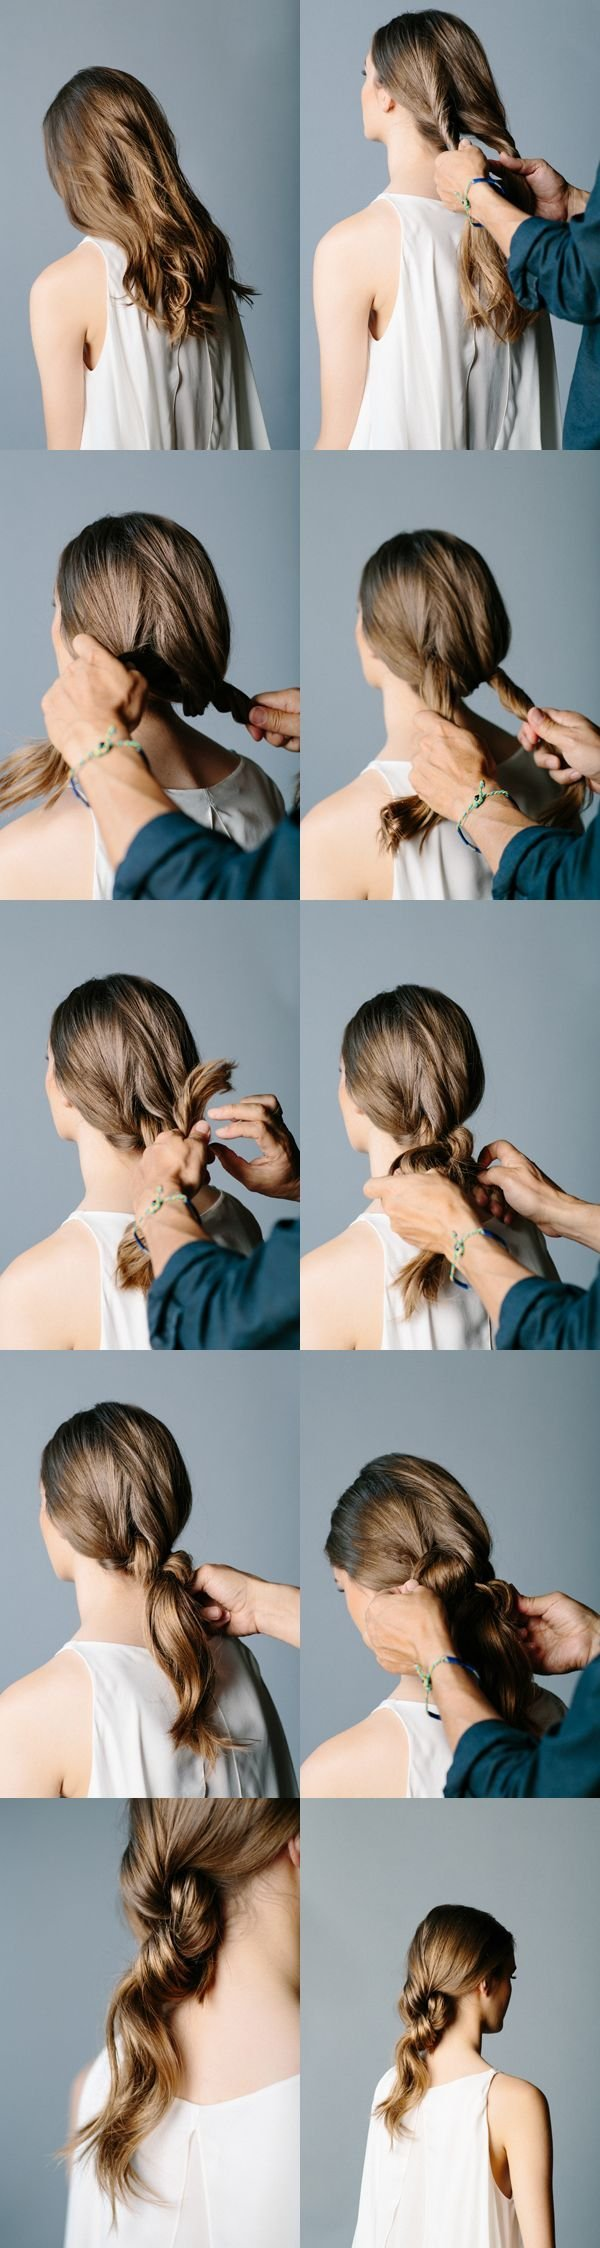 Step 2: Tie Another Knot And Use A Hair Tie To Keep It In Place. Step 3:  Wrap Hair Around The Tie To Conceal It.